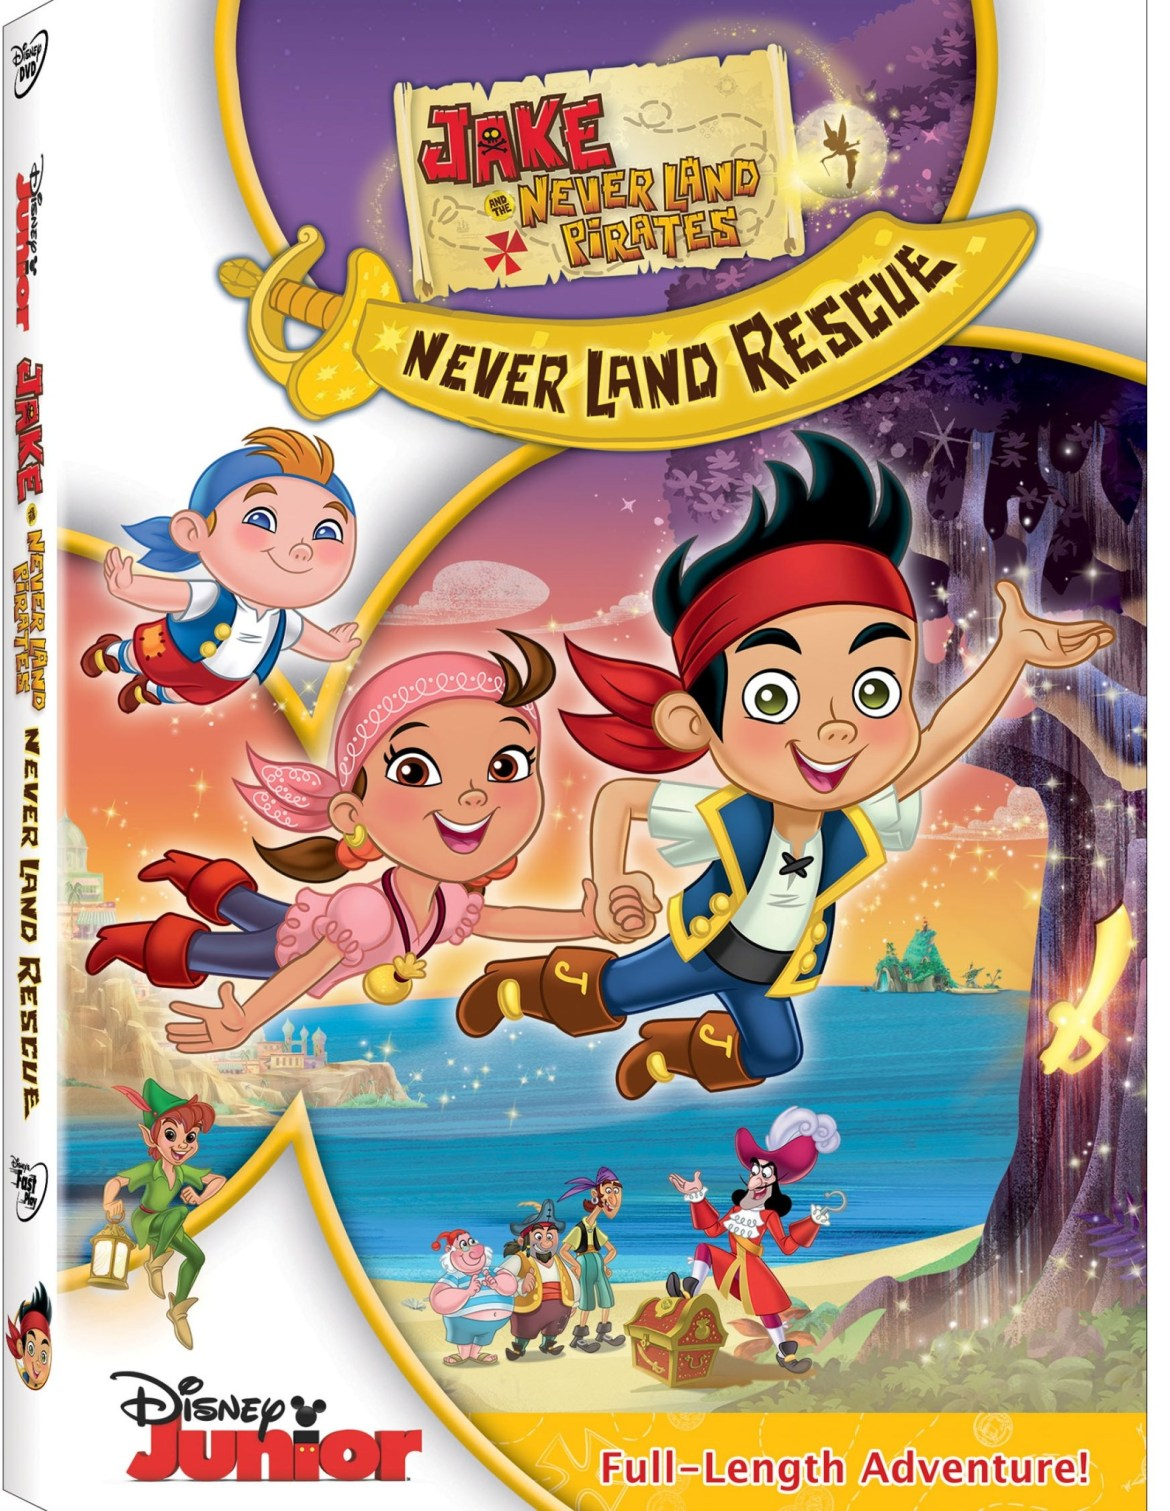 Jake and the Never Land Pirates: Never Land Rescue comes to DVD November 19